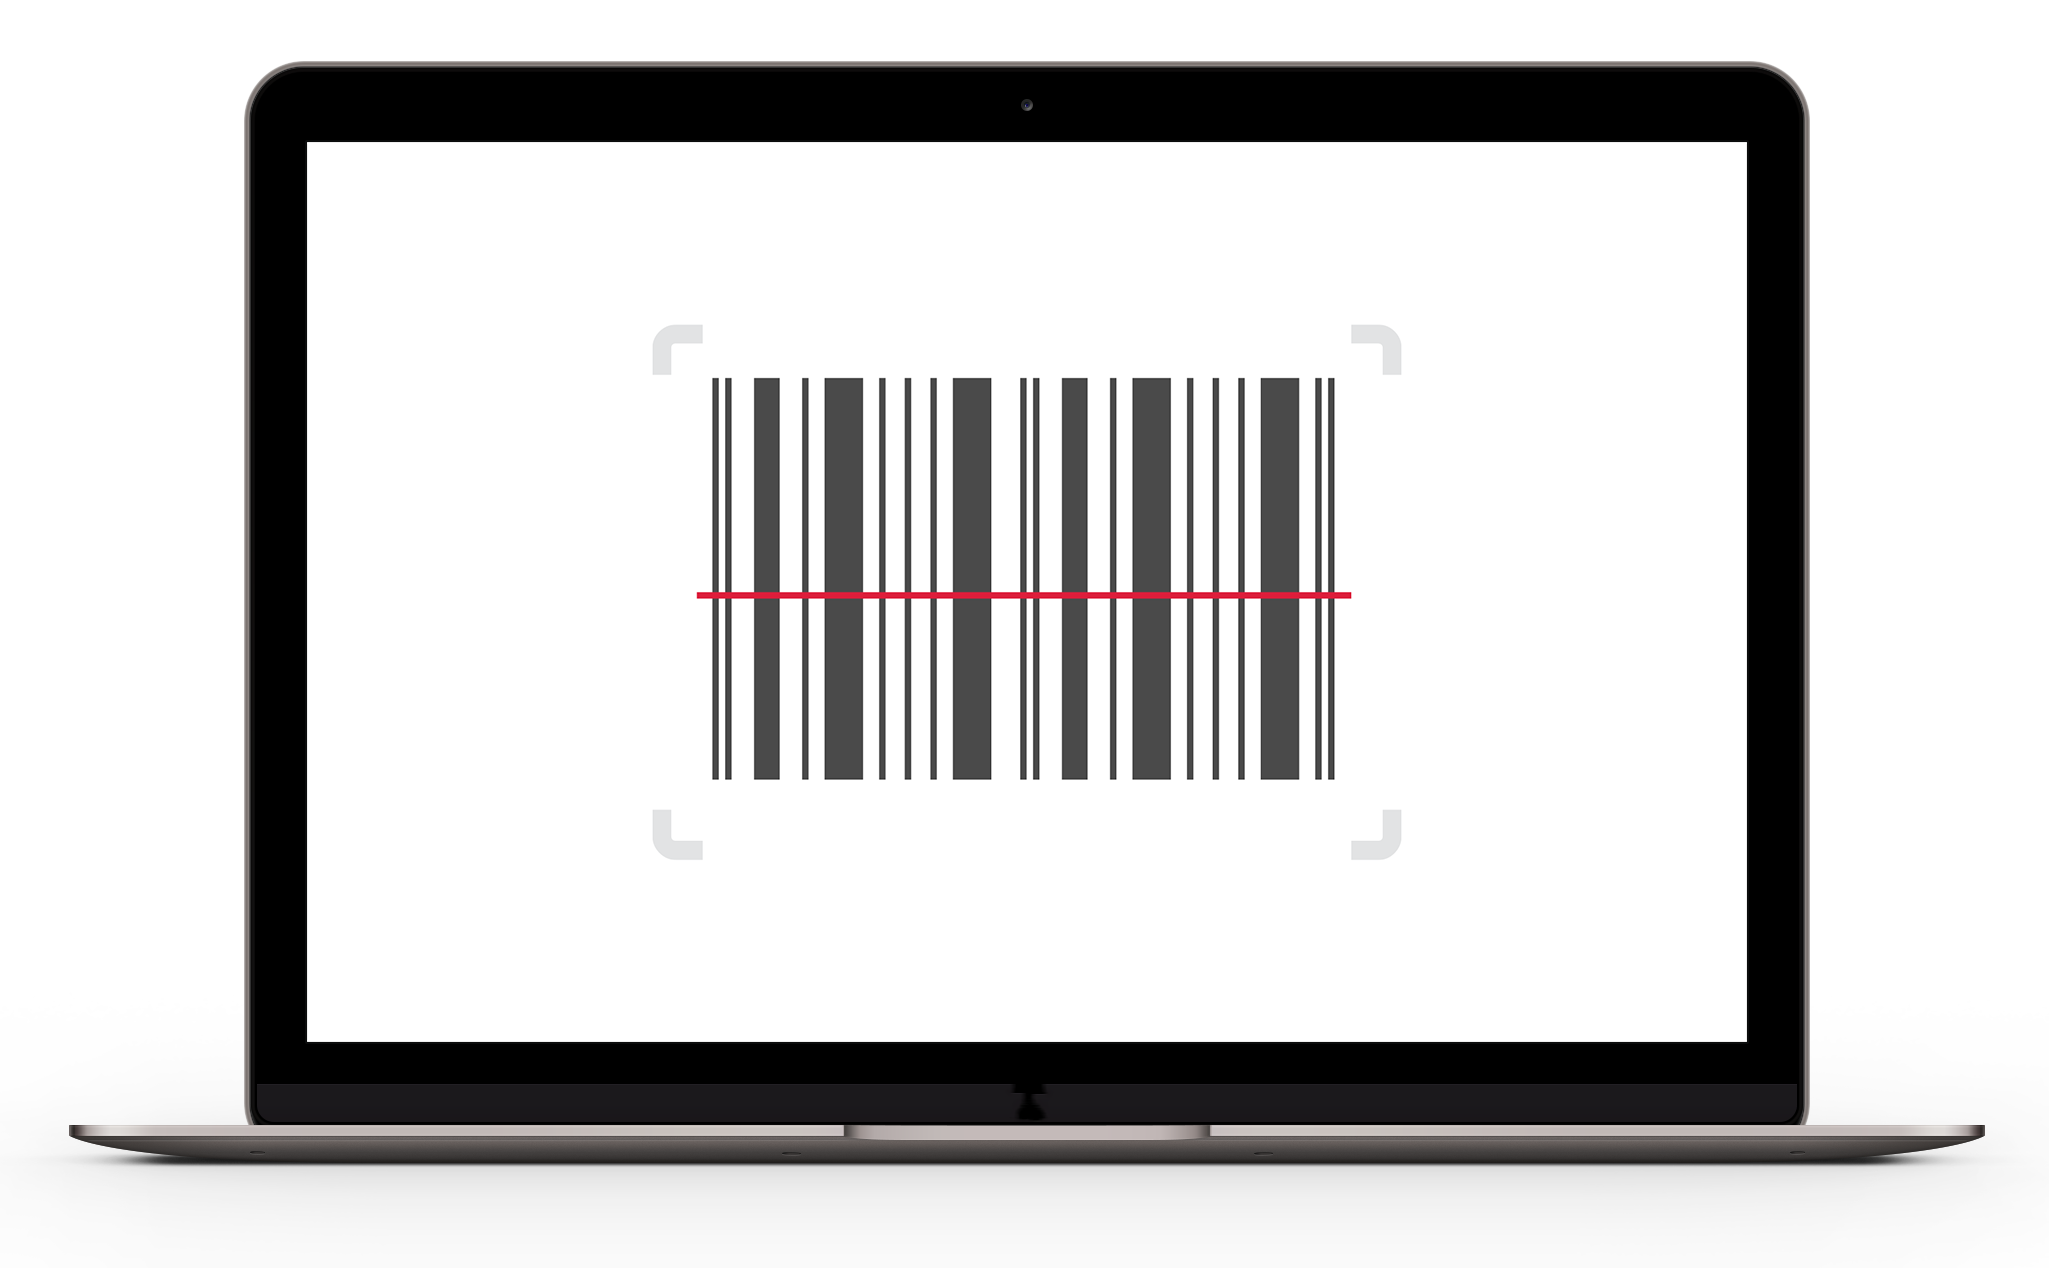 Phone Illustration with Barcode on screen and two products